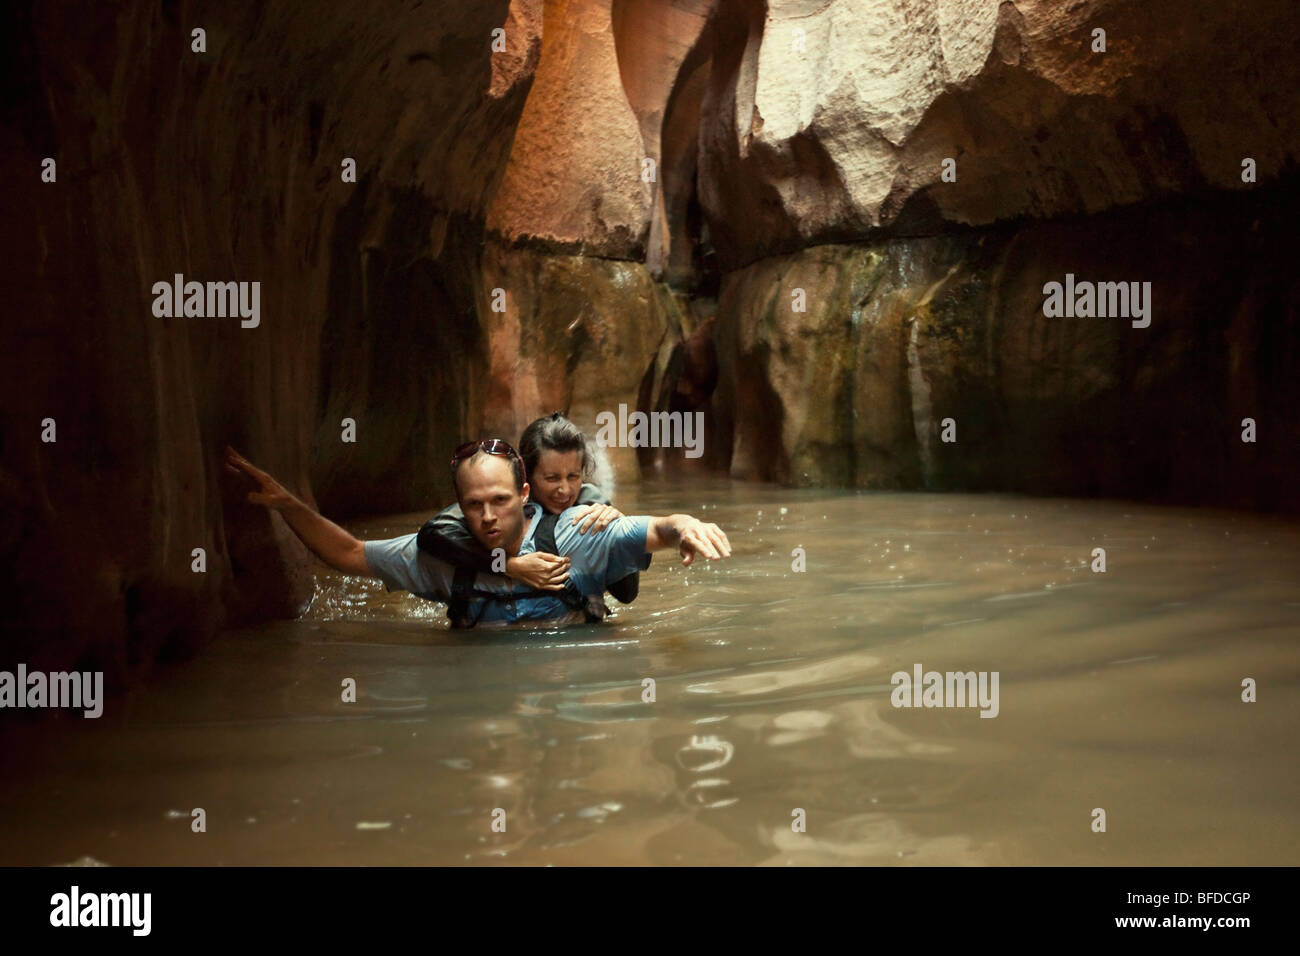 A couple wades through a cold pool in a slot canyon in Utah. Stock Photo